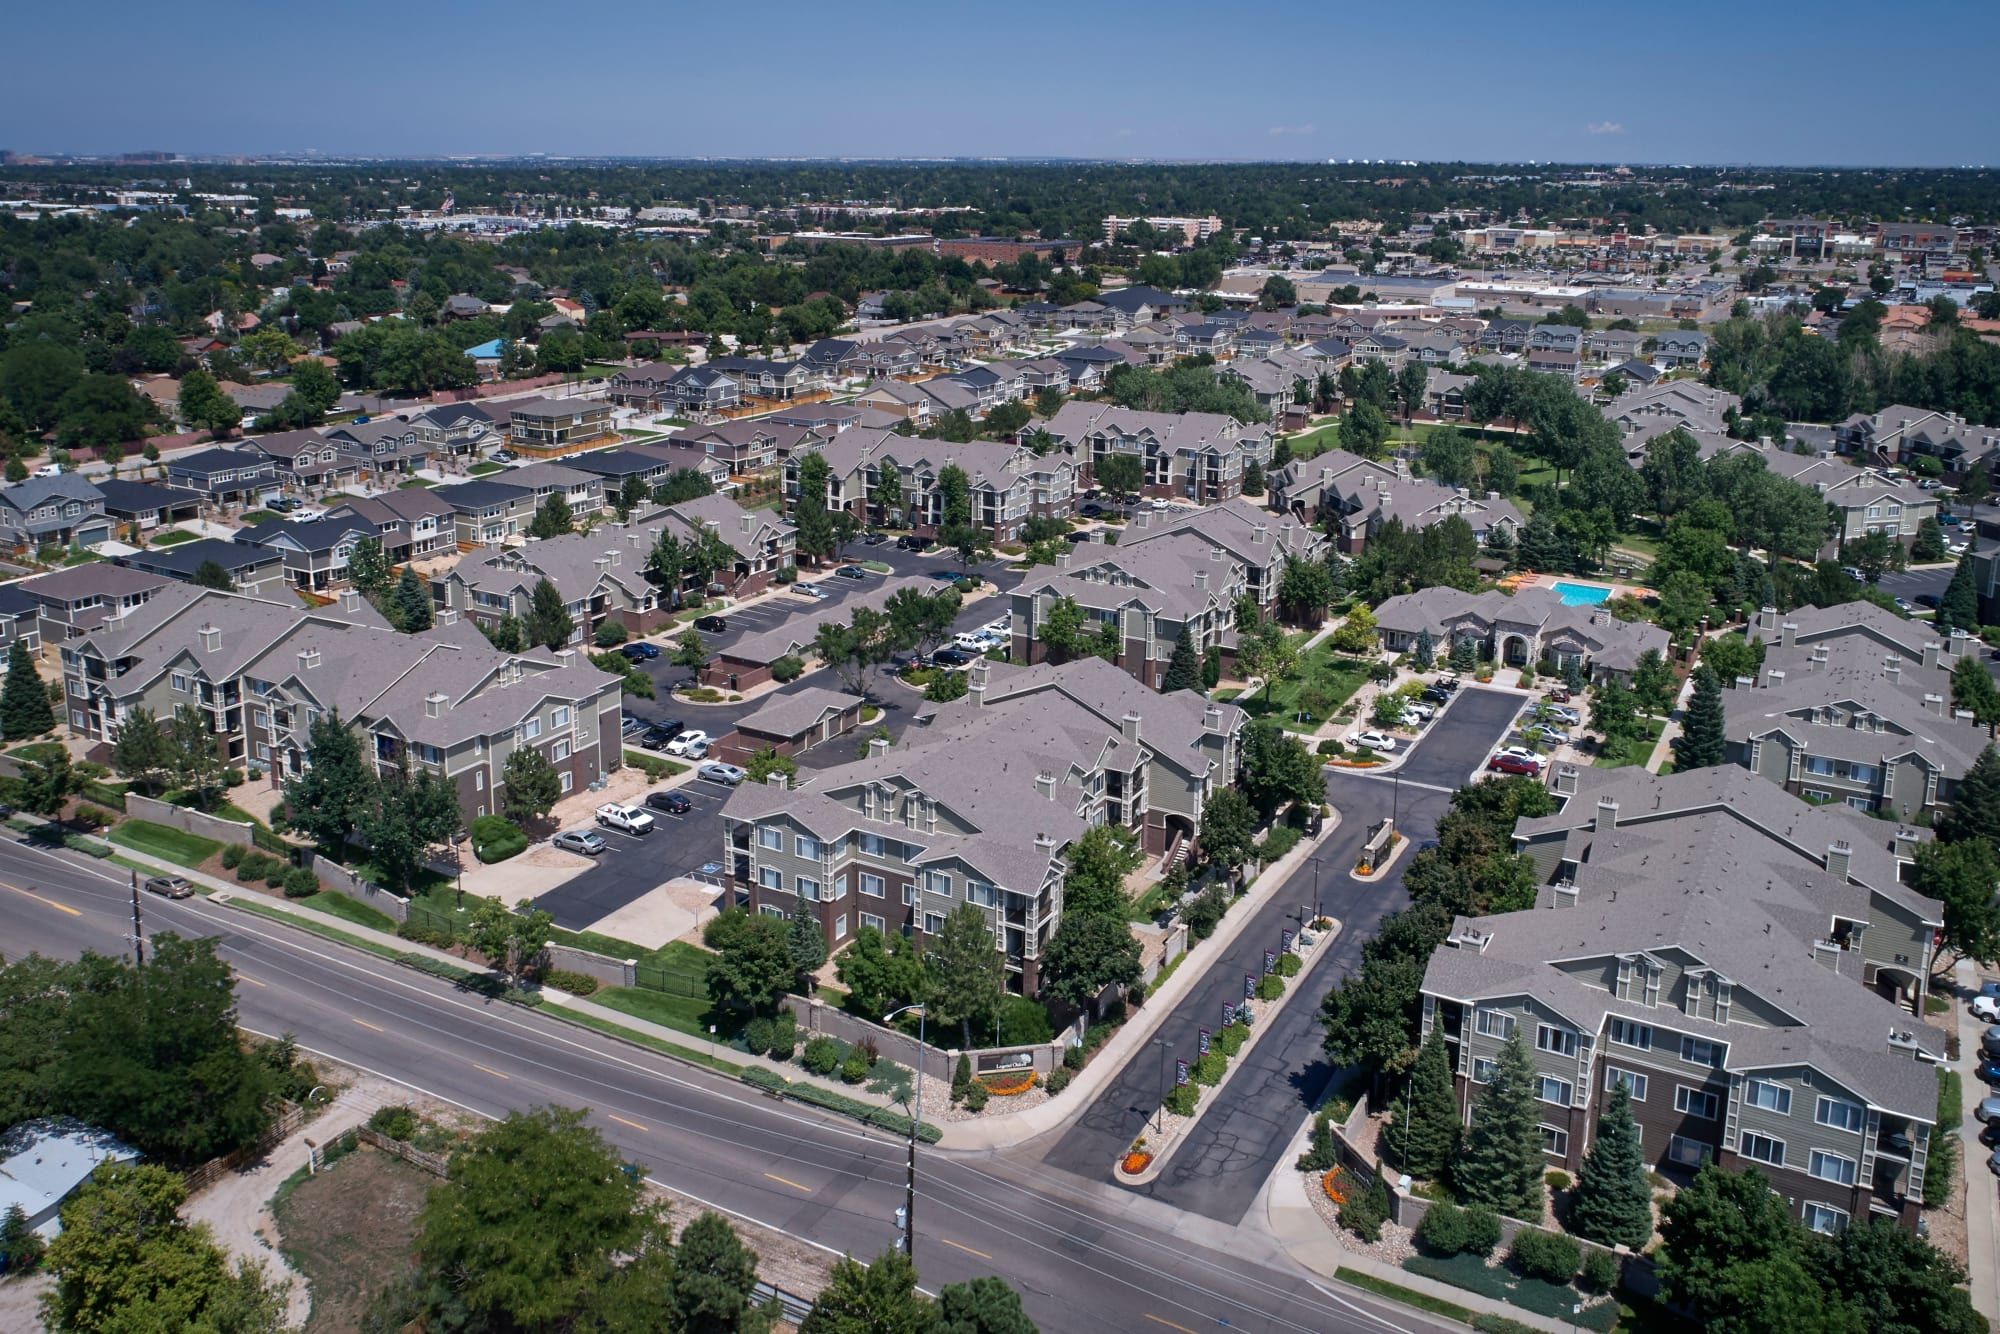 Aerial view of Legend Oaks Apartments in Aurora, Colorado